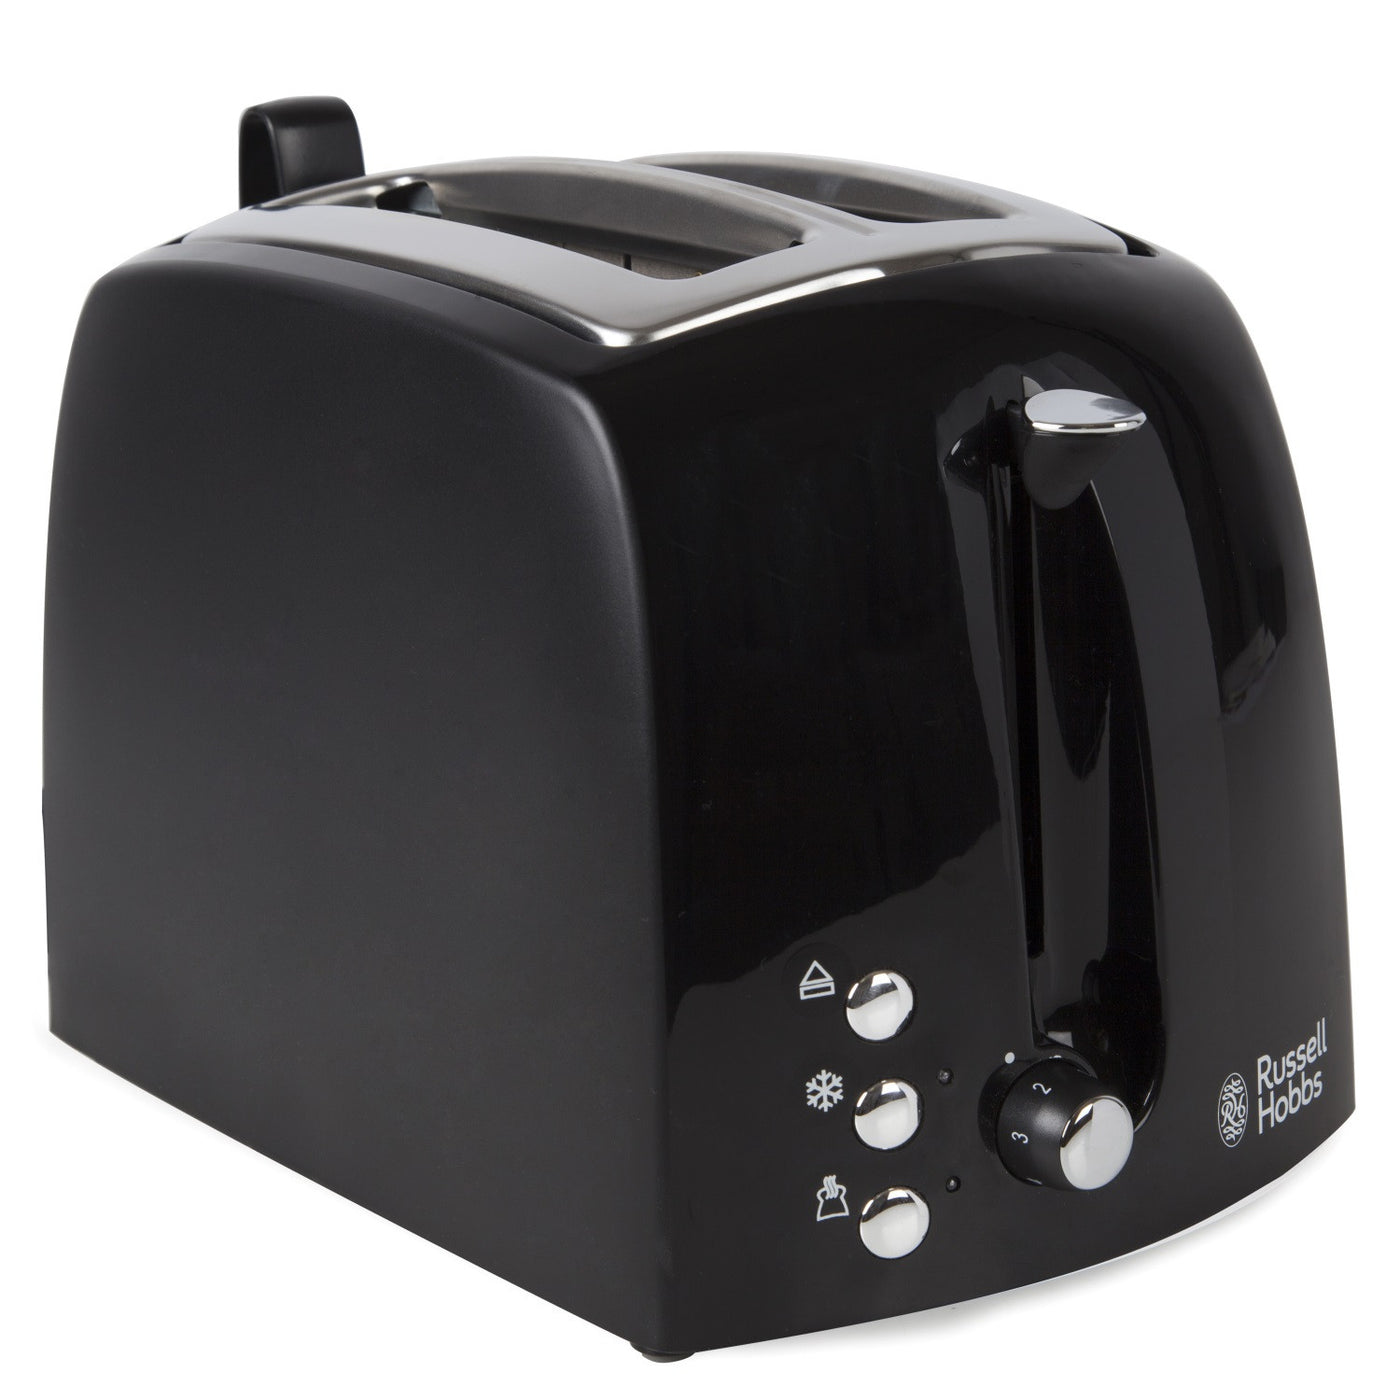 toaster slice toasters brand beau products eternal swan